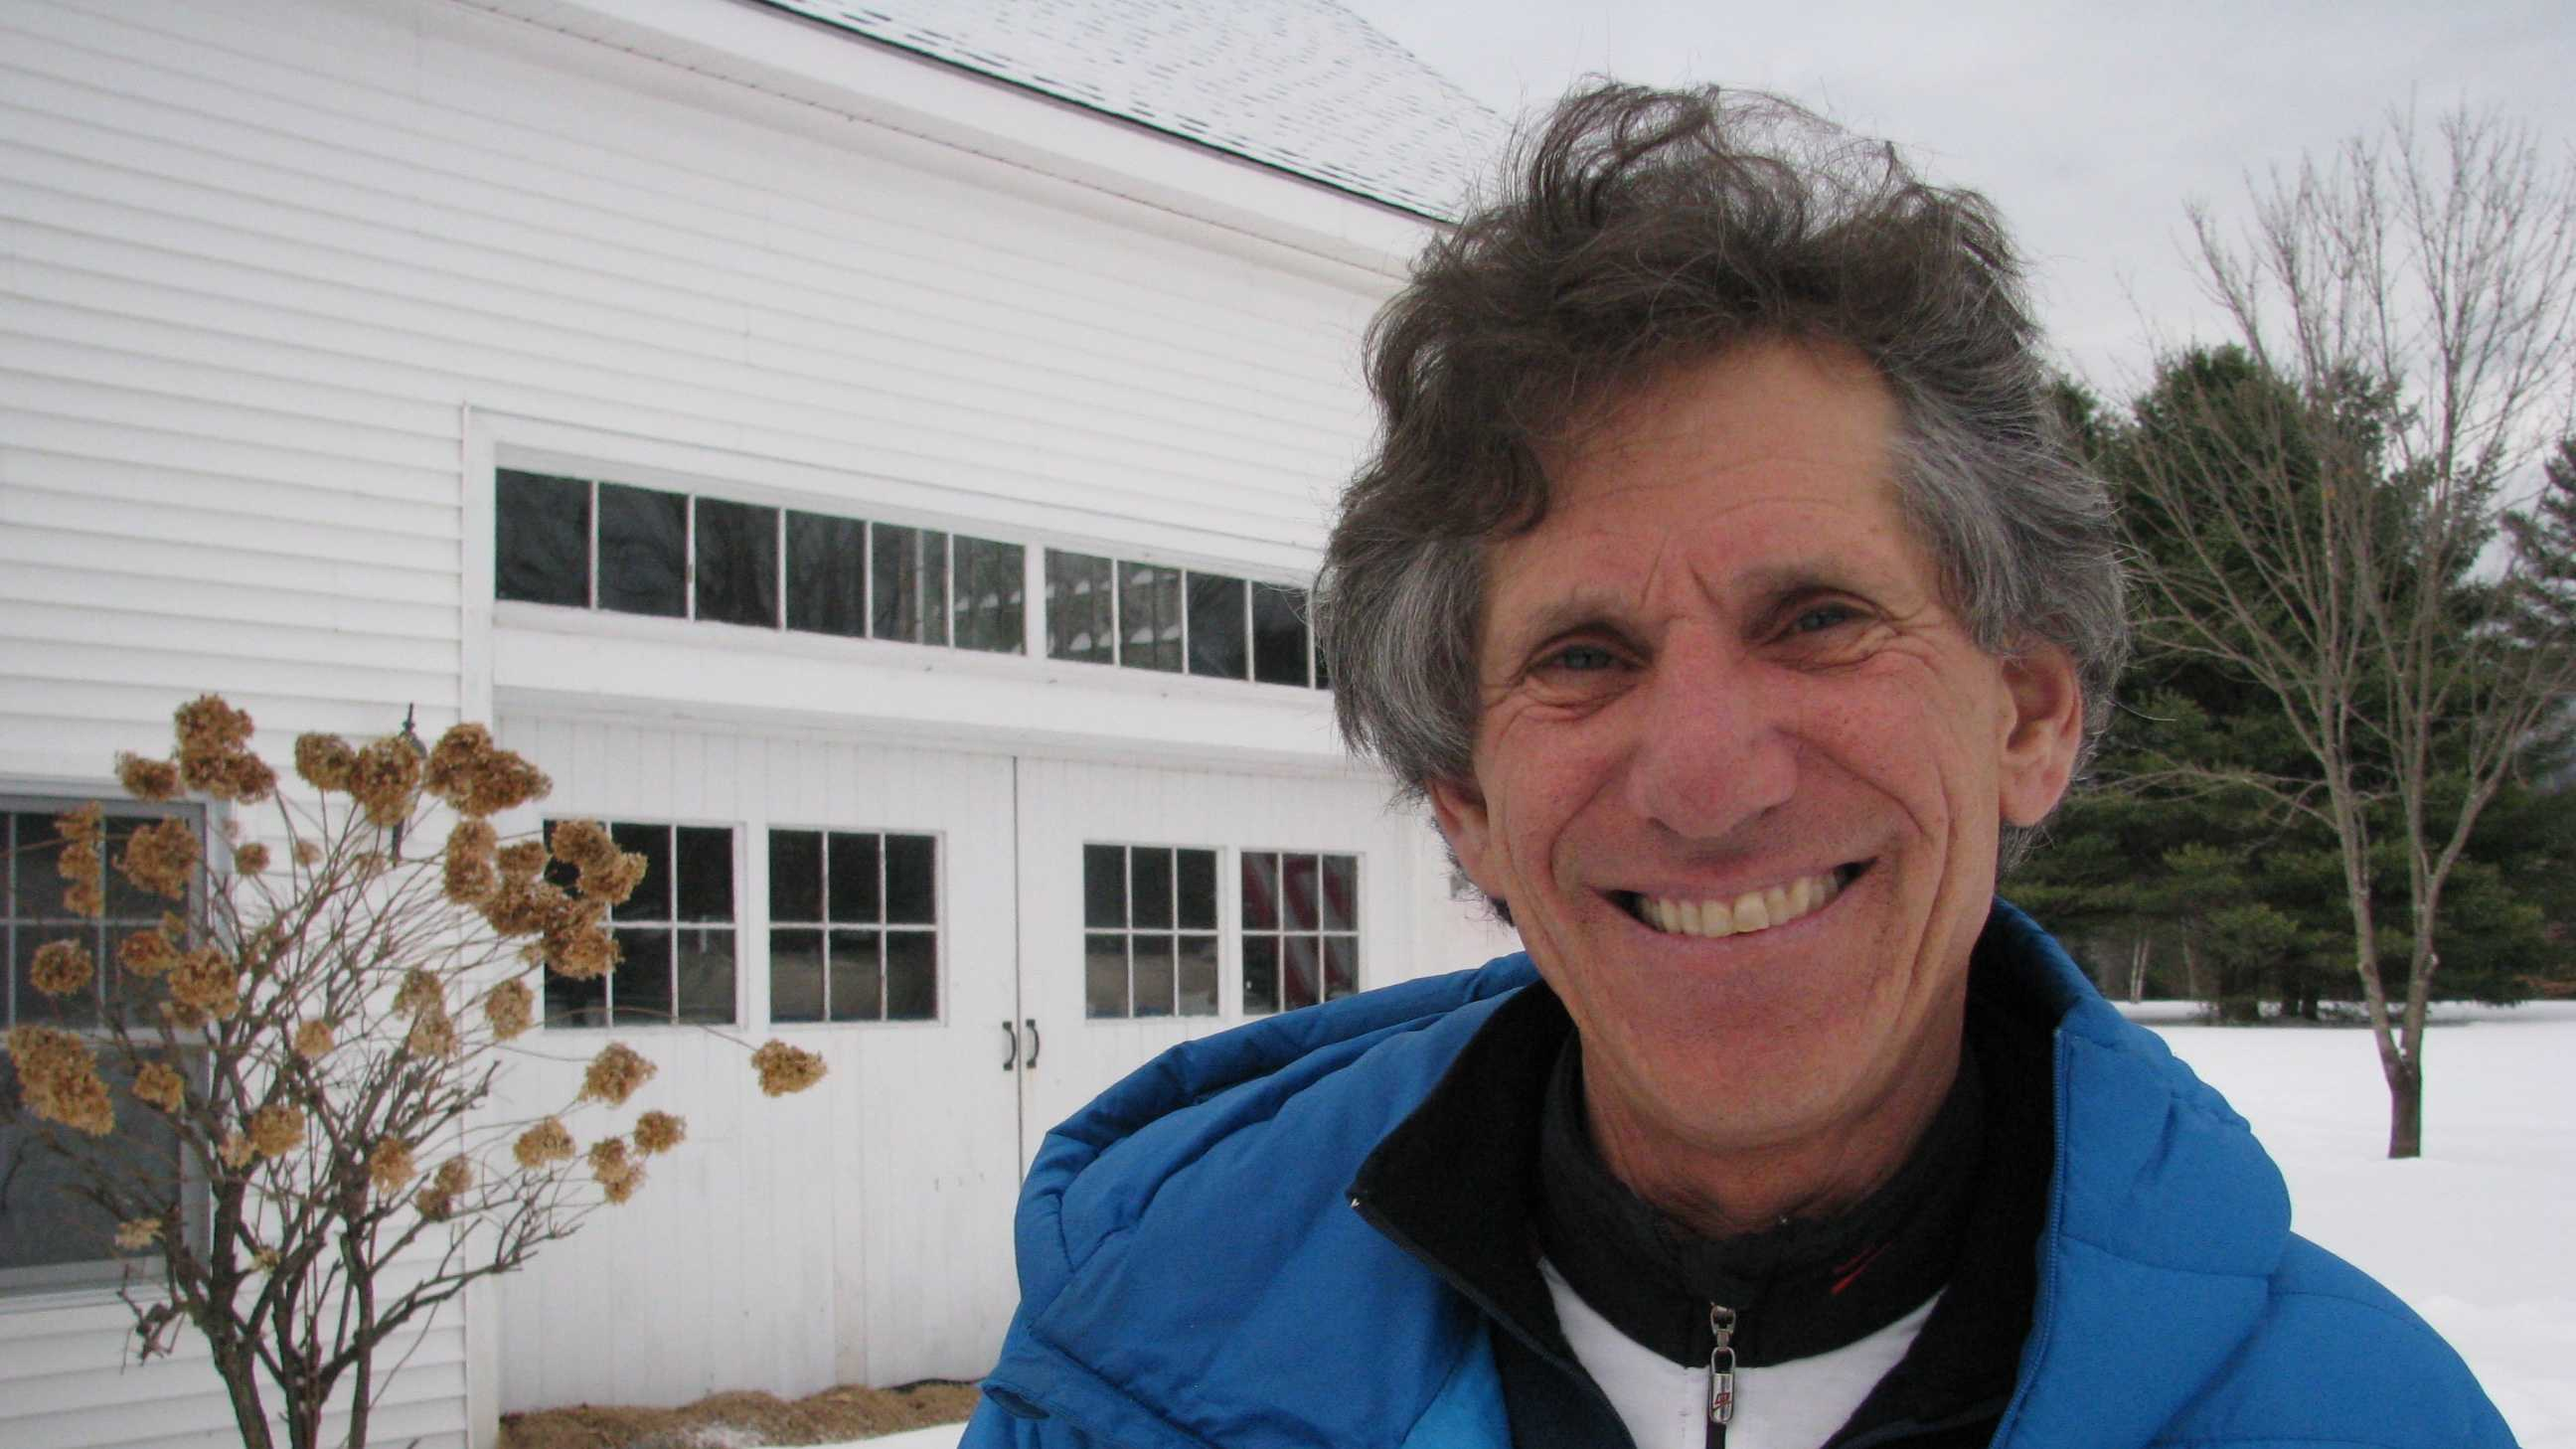 Nick Preston, the father of Freestyle skiing, at his Mountain Fare Inn in Campton where he houses and trains athletes.